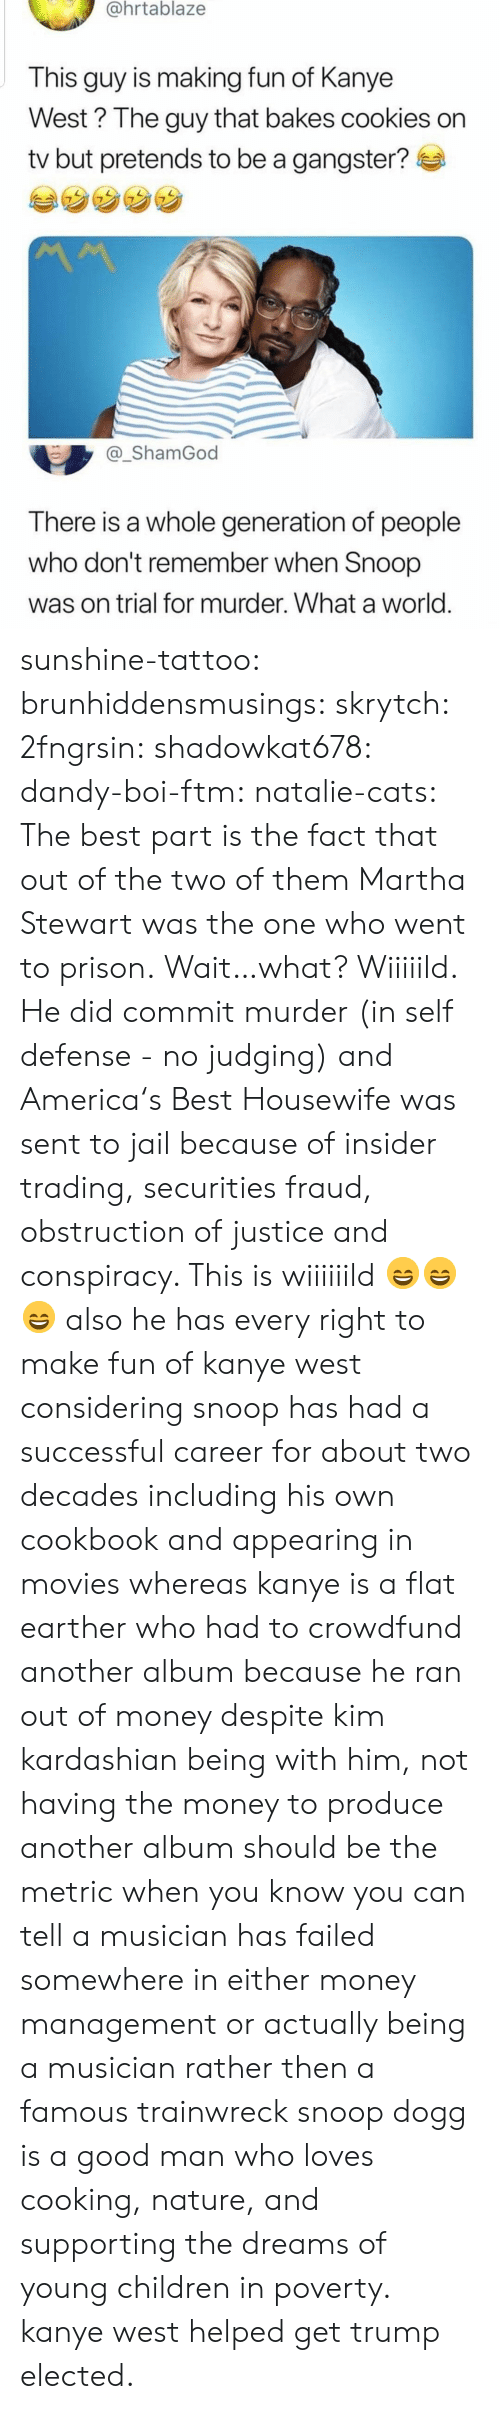 Kardashian: @hrtablaze  This guy is making fun of Kanye  West? The guy that bakes cookies on  tv but pretends to be a gangster?  _ShamGod  There is a whole generation of people  who don't remember when Snoop  was on trial for murder. What a world sunshine-tattoo: brunhiddensmusings:  skrytch:  2fngrsin:  shadowkat678:  dandy-boi-ftm:   natalie-cats:   The best part is the fact that out of the two of them Martha Stewart was the one who went to prison.   Wait…what?   Wiiiiild. He did commit murder (in self defense - no judging) and America's Best Housewife was sent to jail because of insider trading, securities fraud, obstruction of justice and conspiracy. This is wiiiiiild 😄😄😄    also he has every right to make fun of kanye west considering snoop has had a successful career for about two decades including his own cookbook and appearing in movies whereas kanye is a flat earther who had to crowdfund another album because he ran out of money despite kim kardashian being with him, not having the money to produce another album should be the metric when you know you can tell a musician has failed somewhere in either money management or actually being a musician rather then a famous trainwreck   snoop dogg is a good man who loves cooking, nature, and supporting the dreams of young children in poverty. kanye west helped get trump elected.